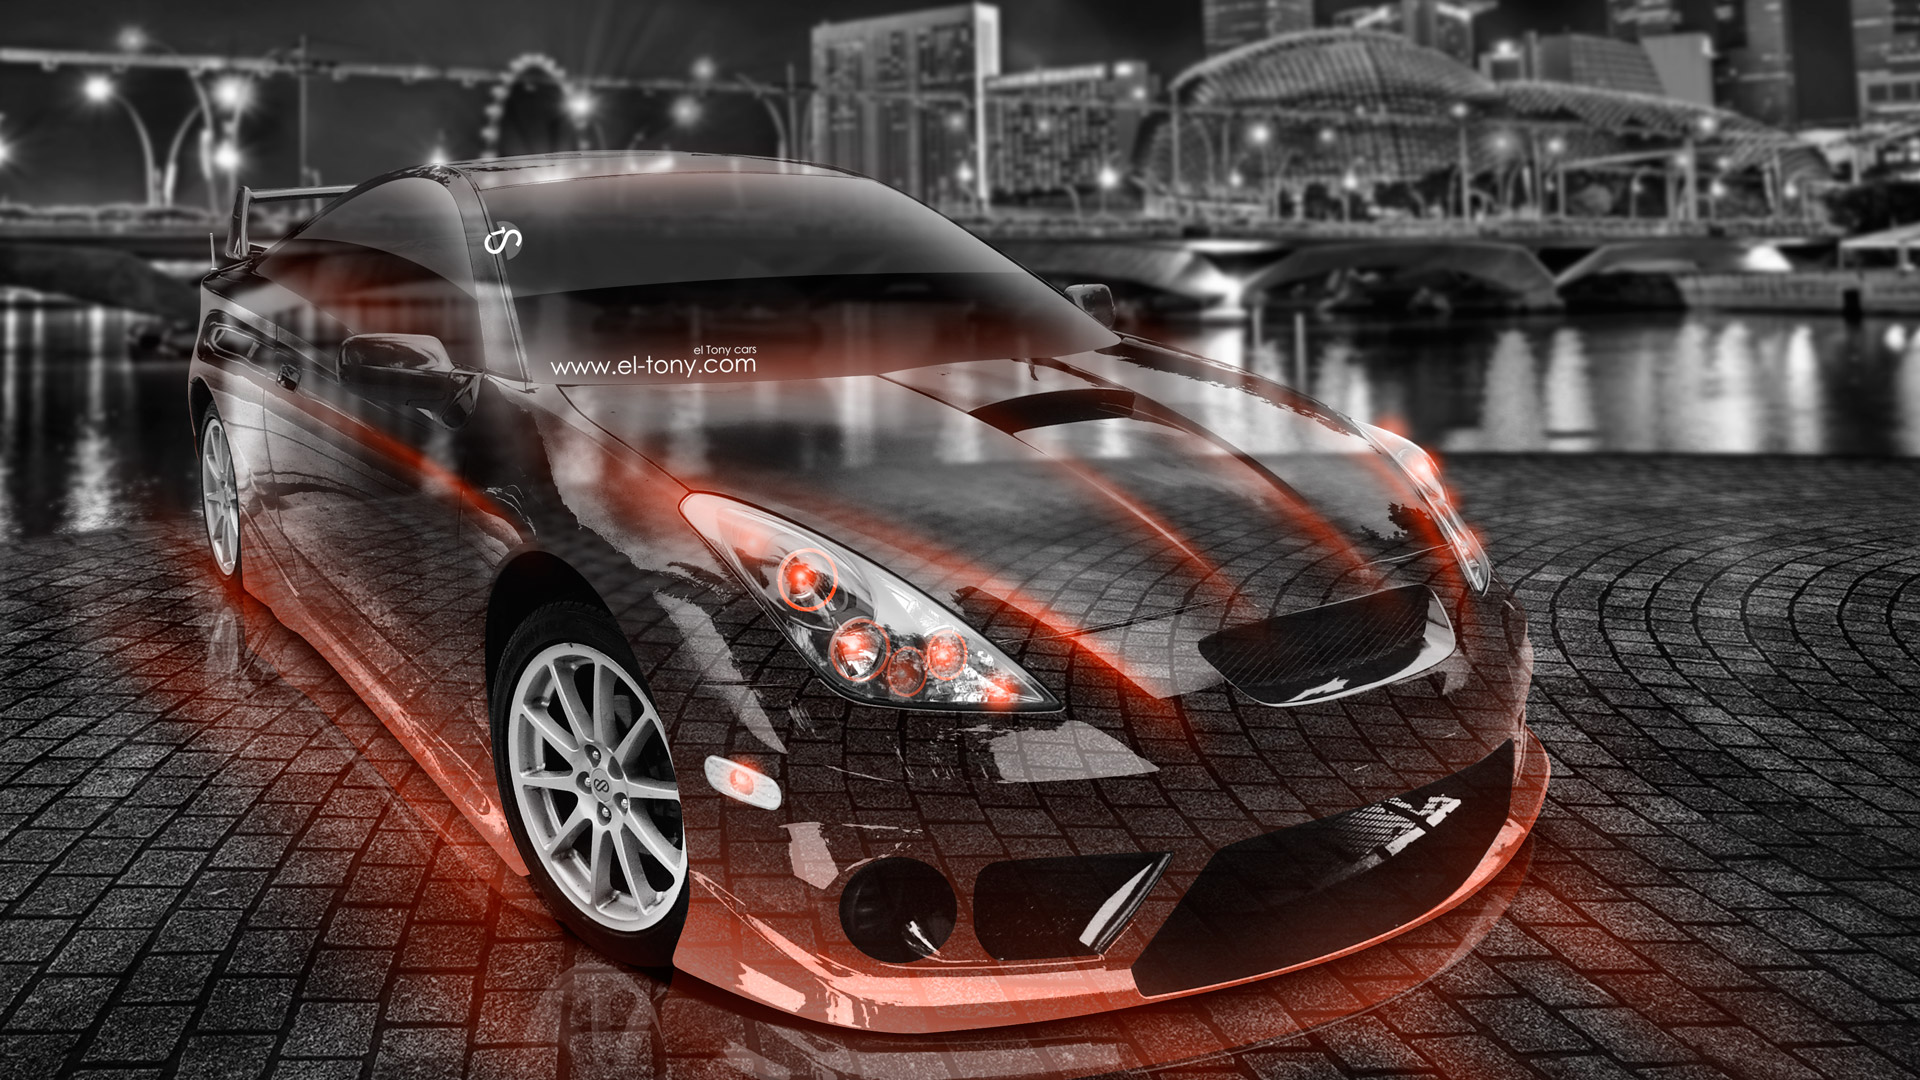 Toyota Celica JDM Tuning Crystal City Car 2015 | El Tony